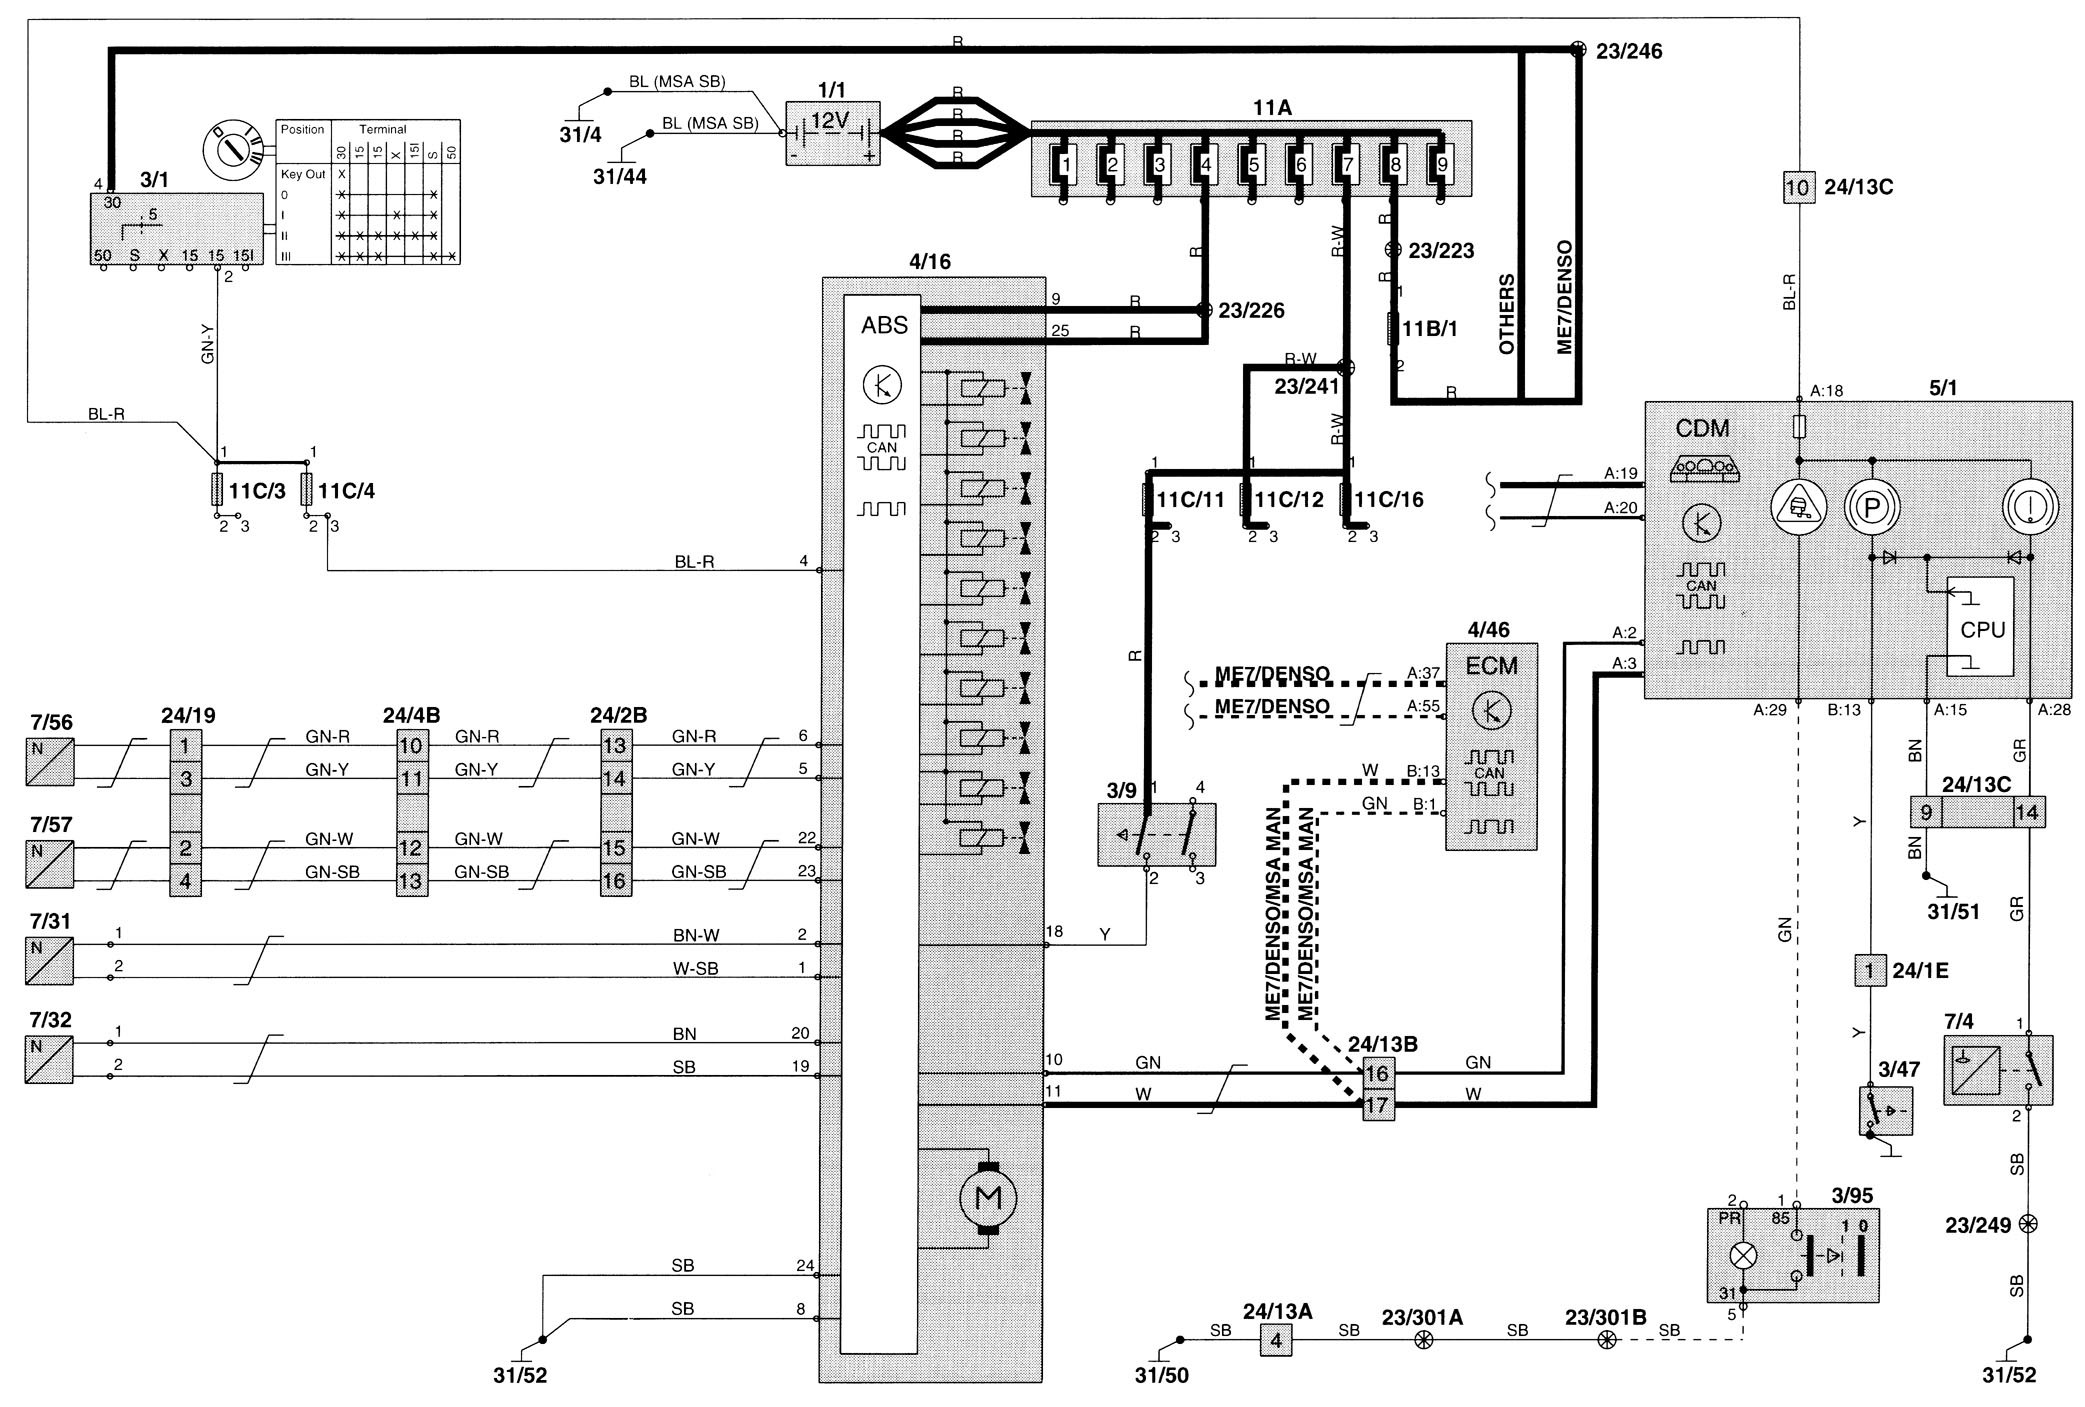 volvo c70 wiring diagram brake control 1999 volvo c70 (1999) wiring diagrams brake control carknowledge 1999 volvo c70 wiring diagram at bayanpartner.co